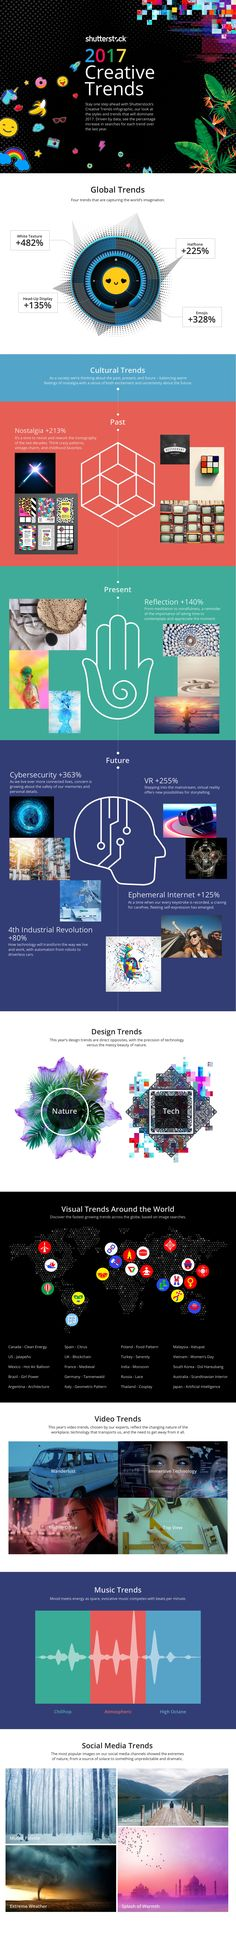 20+ #Visual & #Creative Trends Your #Business Should Consider in 2017 #Infographic